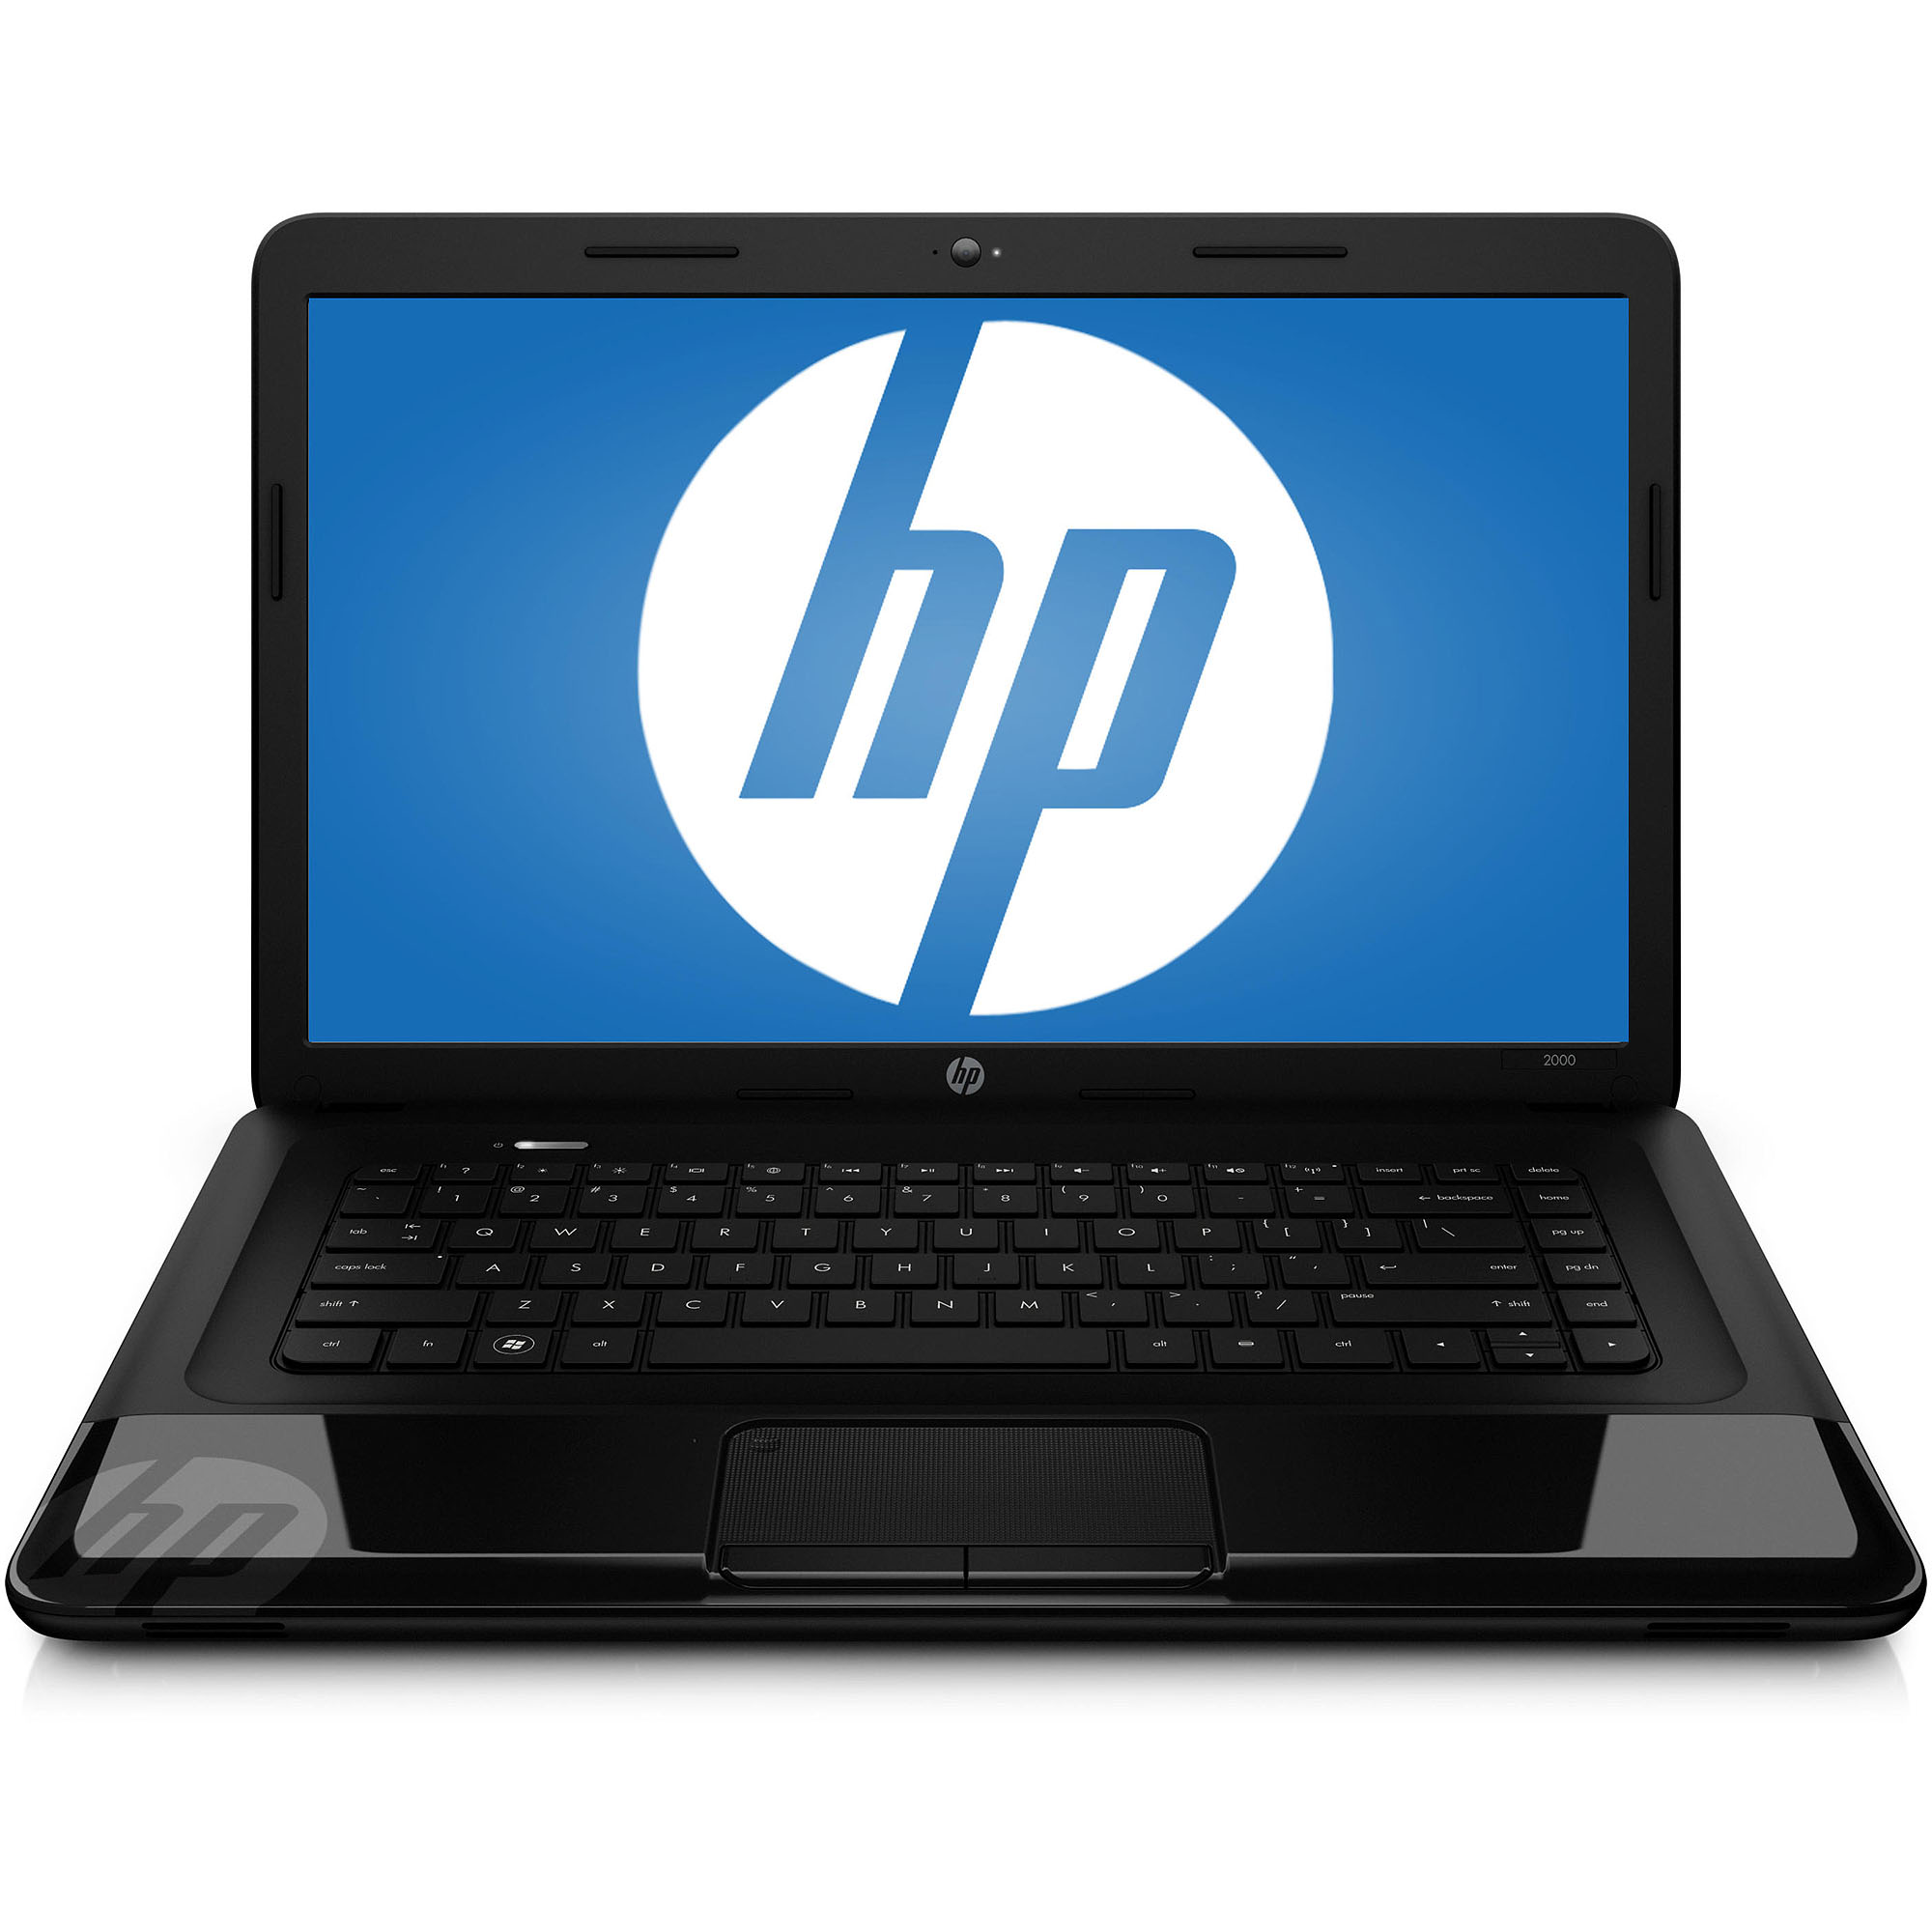 HP Refurbished Winter Blue 15.6 2000 - 2b59WM Laptop PC with Intel Pentium B960 Processor, 4GB Memory, 500GB Hard Drive and Windows 8